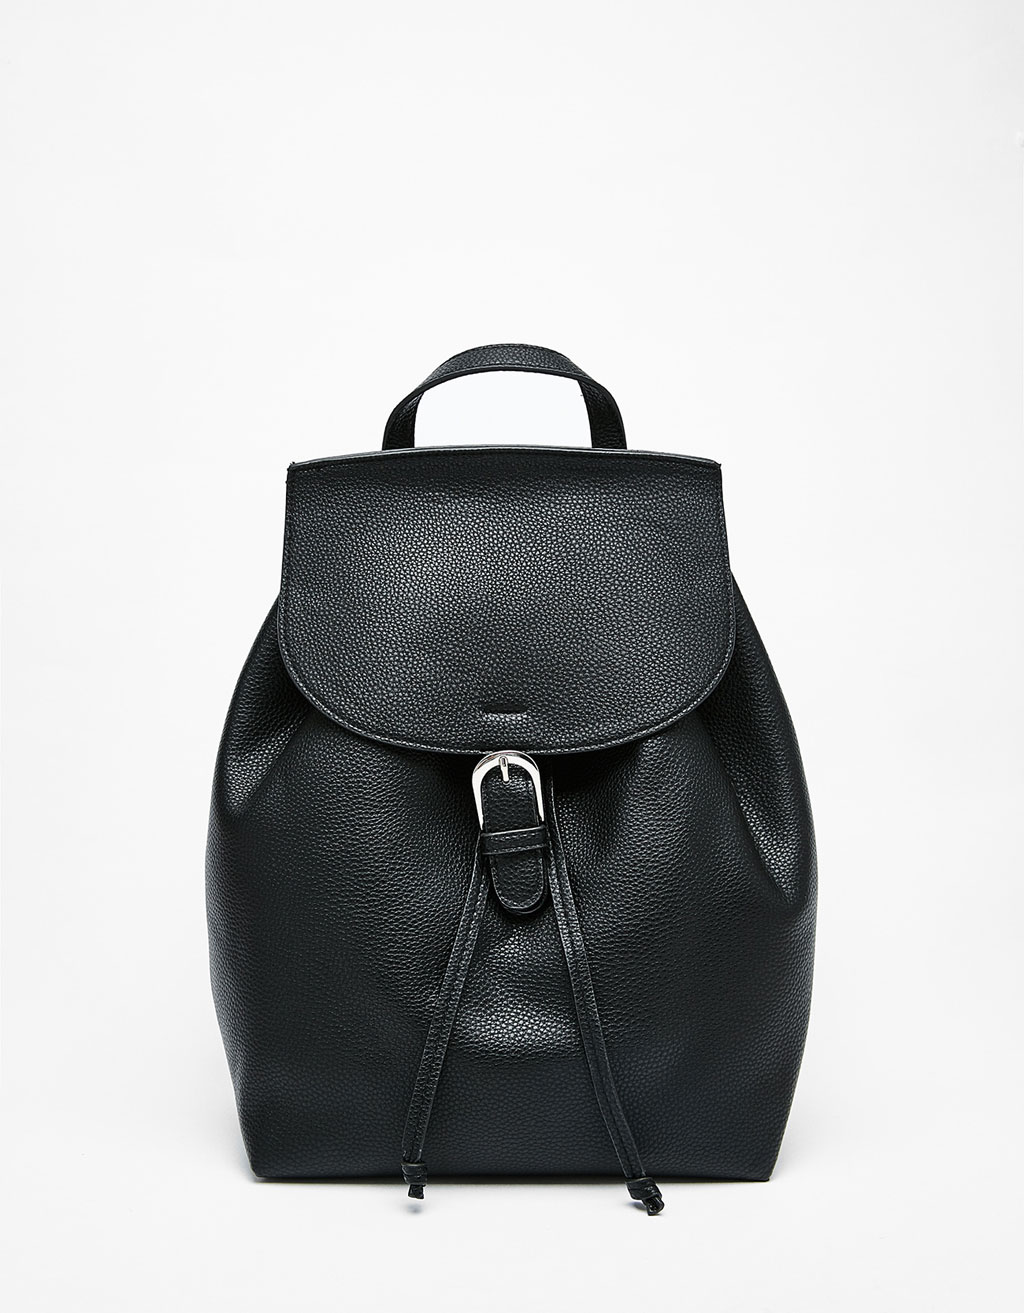 Large minimalist backpack